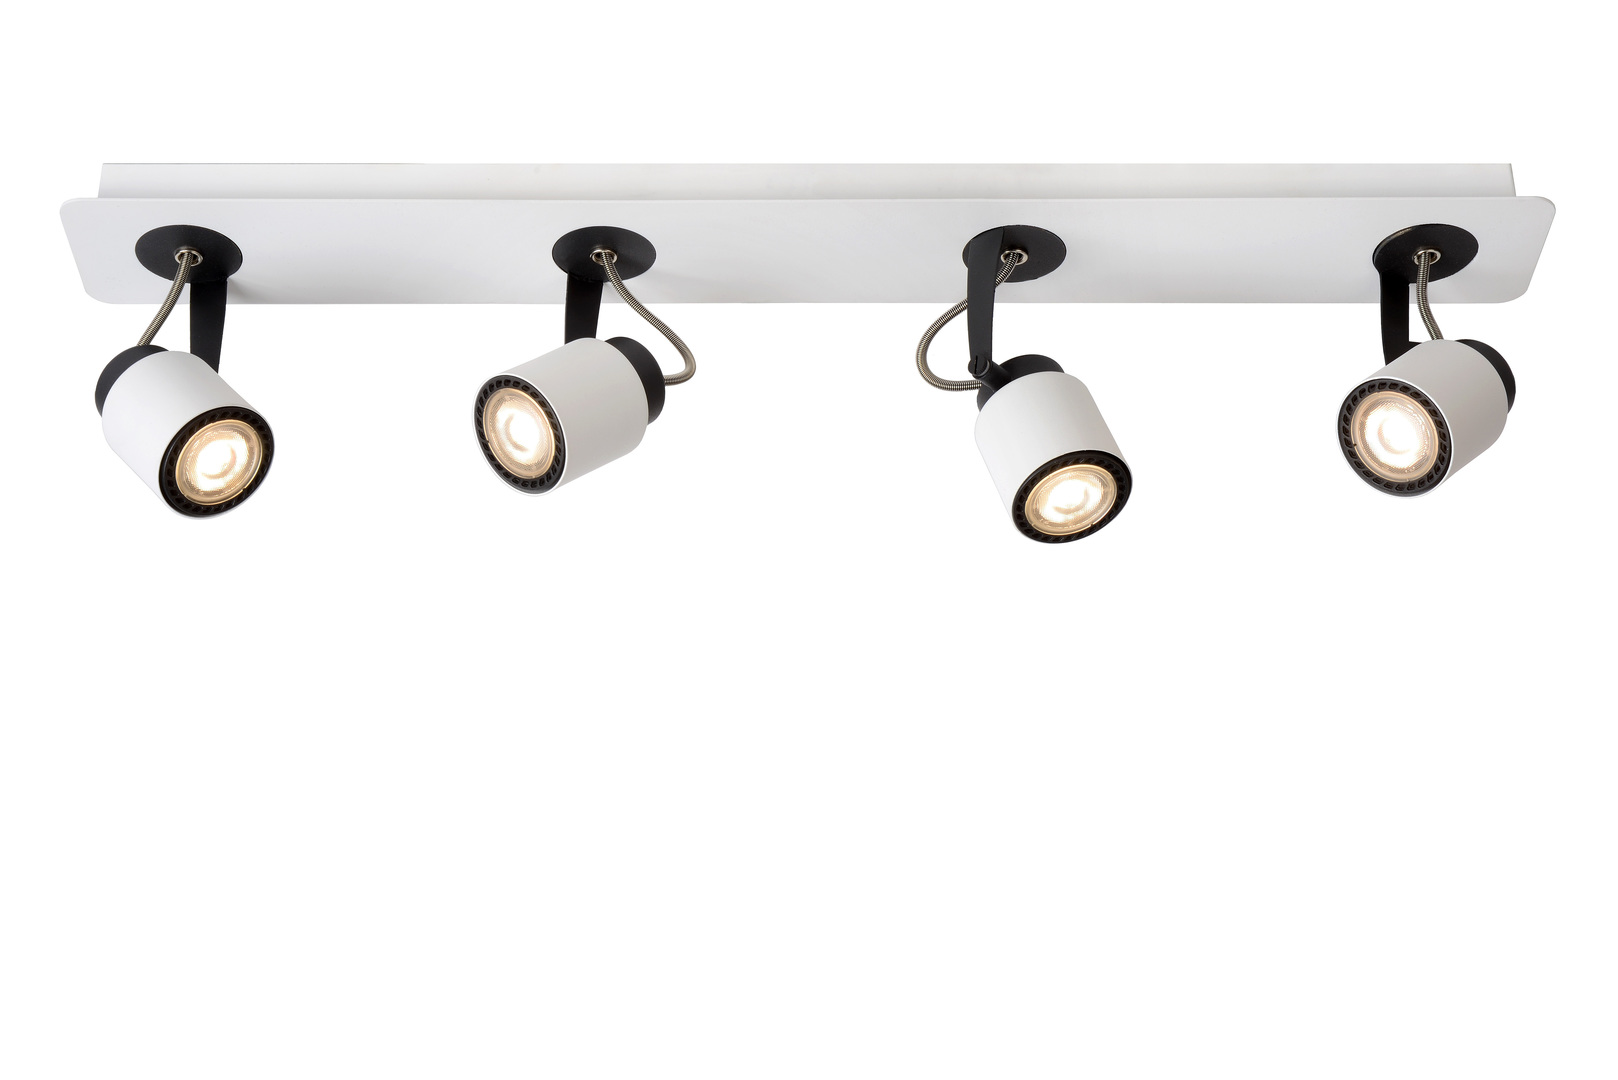 Lucide DICA LED 17989/20/31